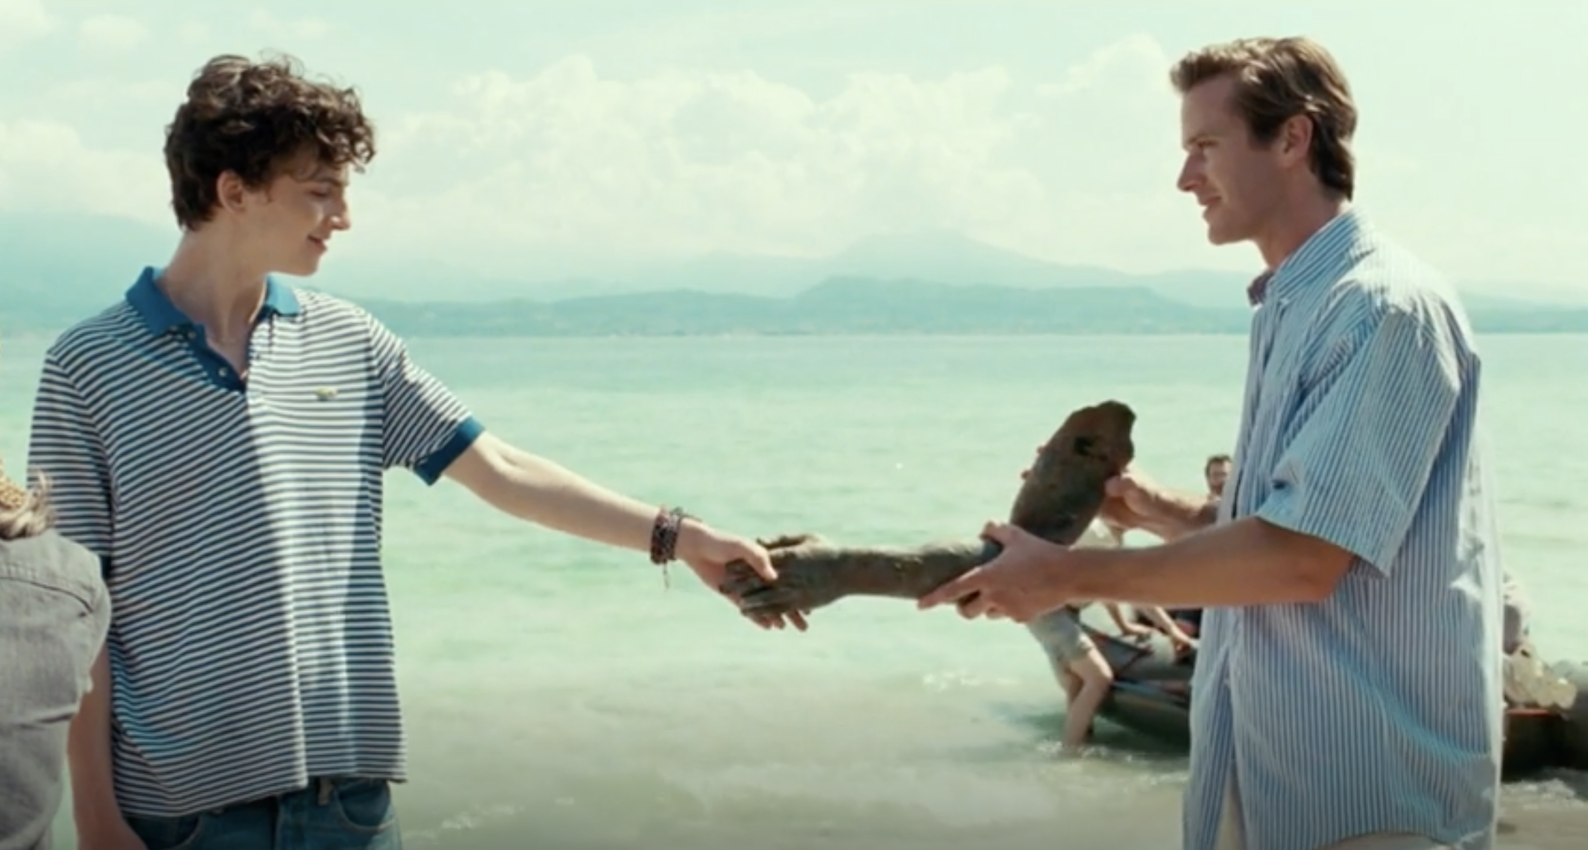 Image via Call Me By Your Name (Sony Pictures Classics).